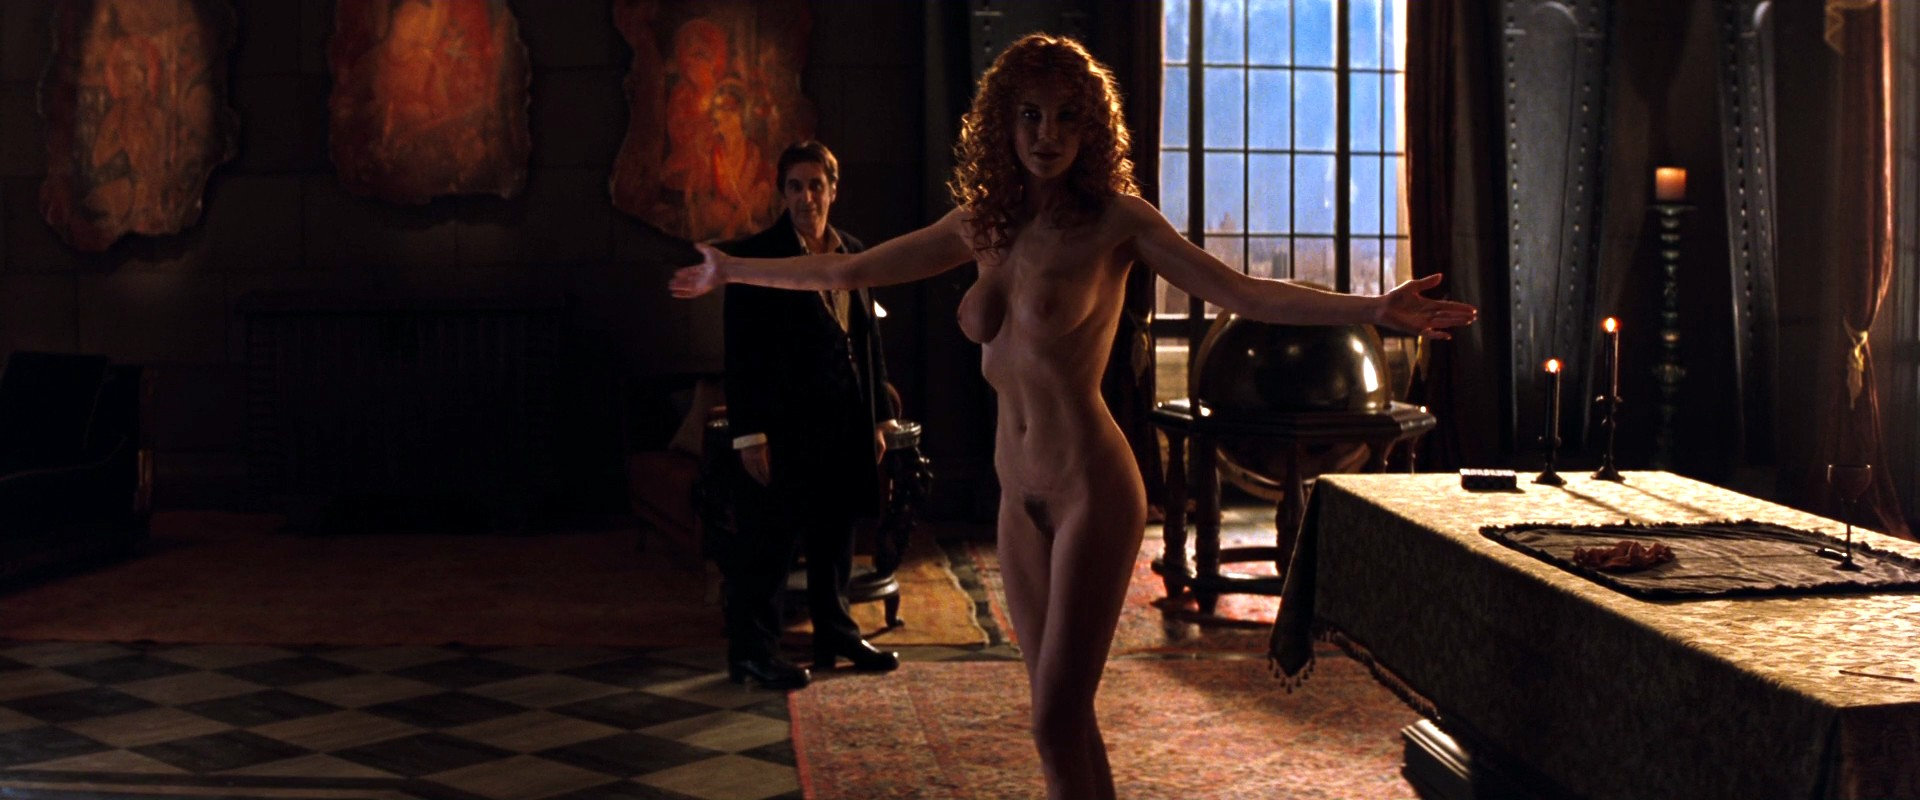 Connie nielsen nude gif — img 7